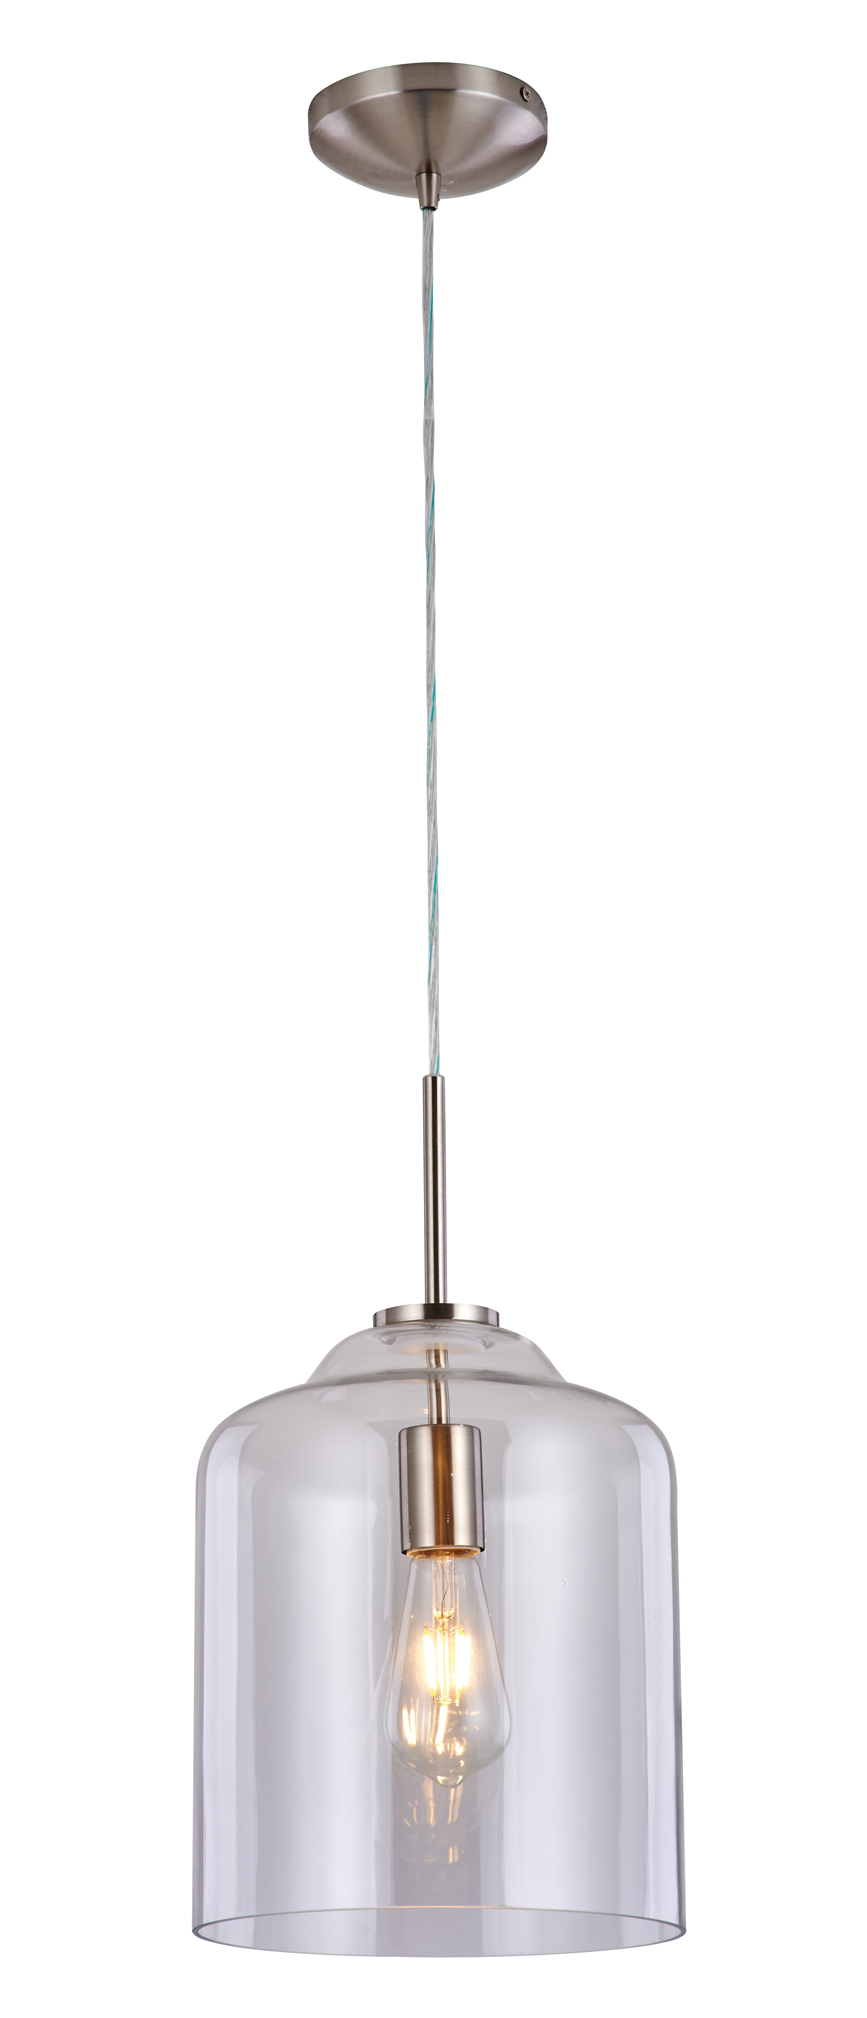 Enelle:  An elegant and sleek glass multi-use pendant.